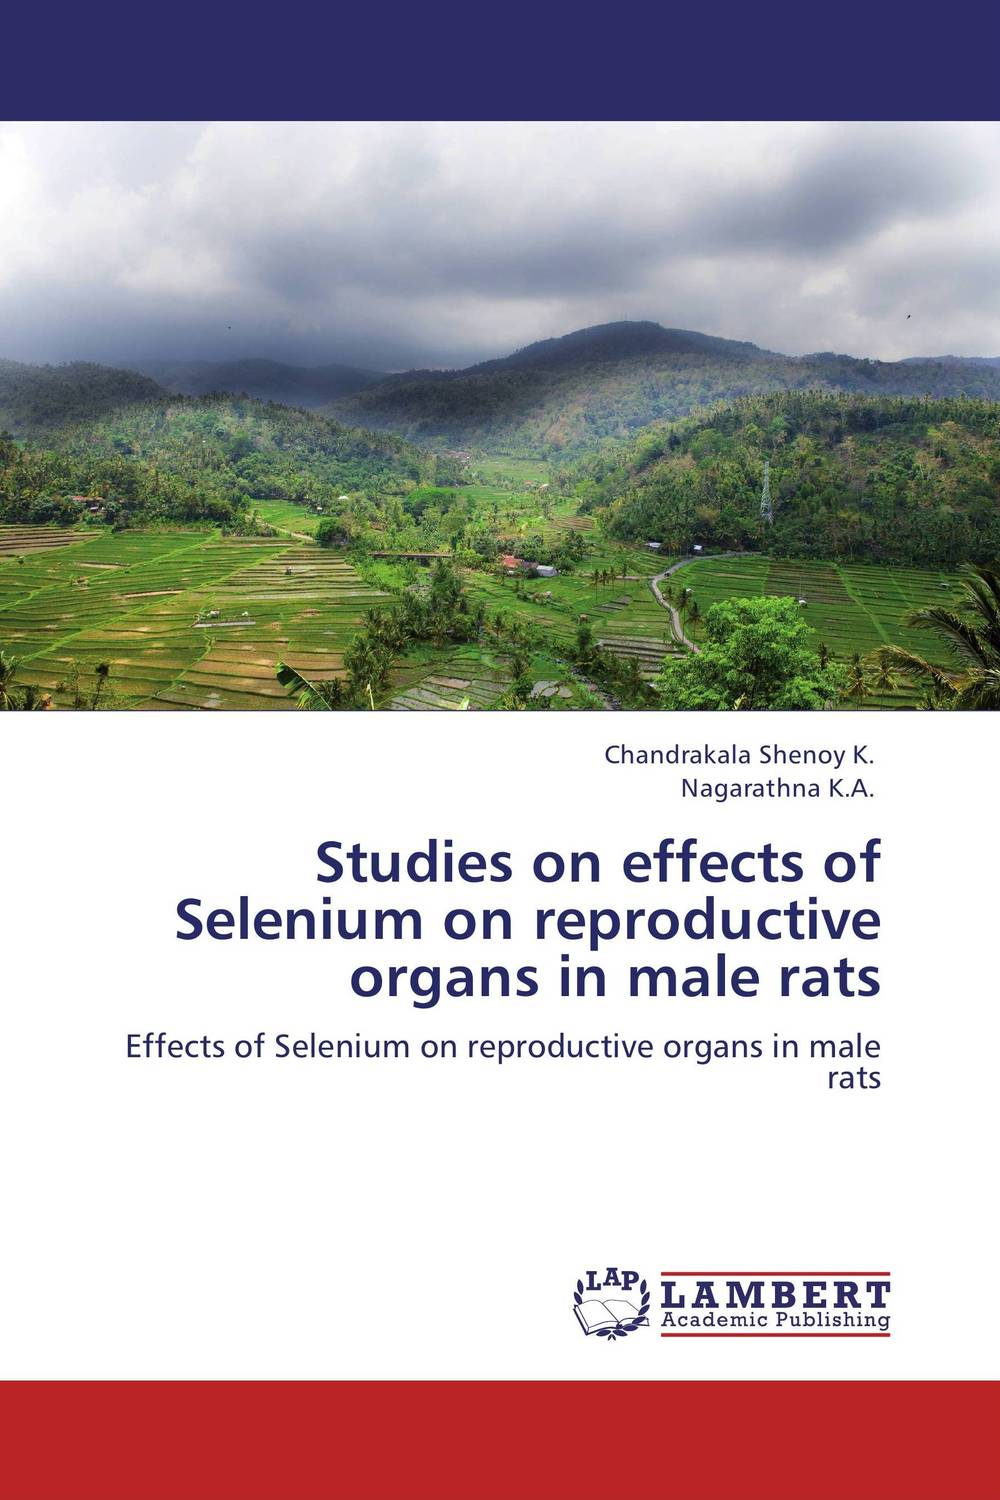 Studies on effects of Selenium on reproductive organs in male rats male genital organs male genitalia anatomical model structure male reproductive organs decomposition model